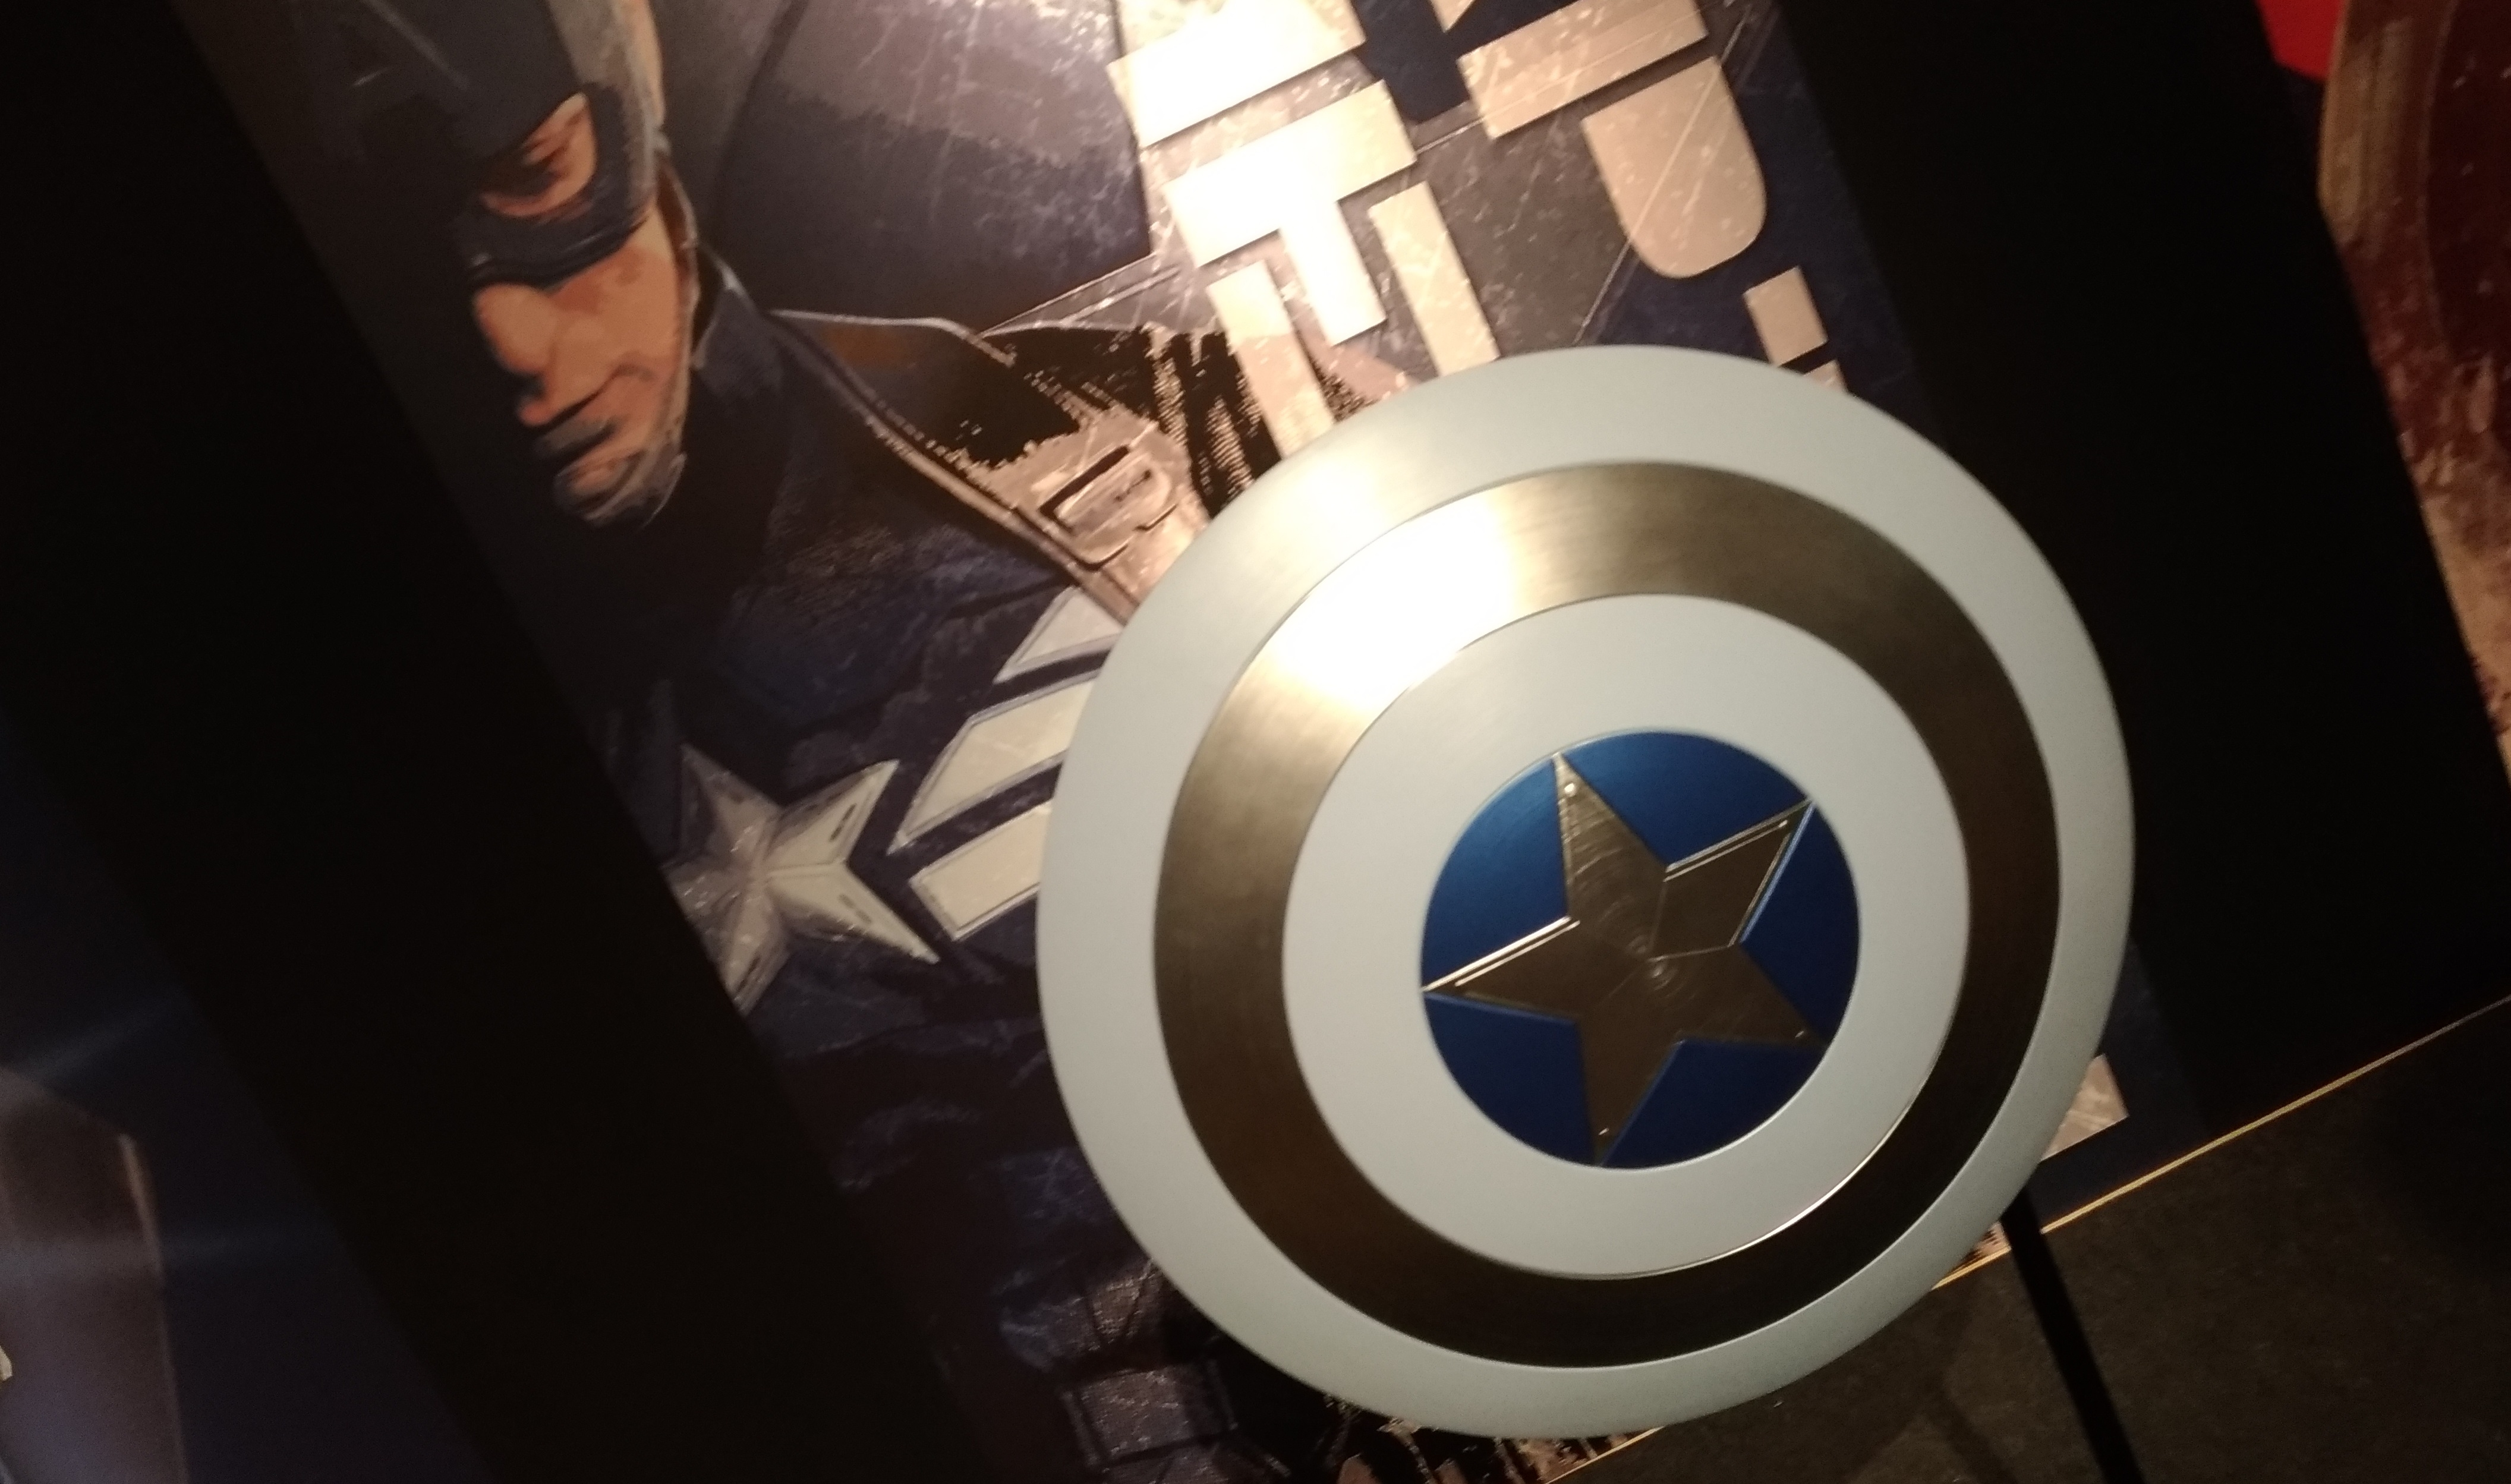 marvel_movies_events_umeda_osaka_0921_.jpg